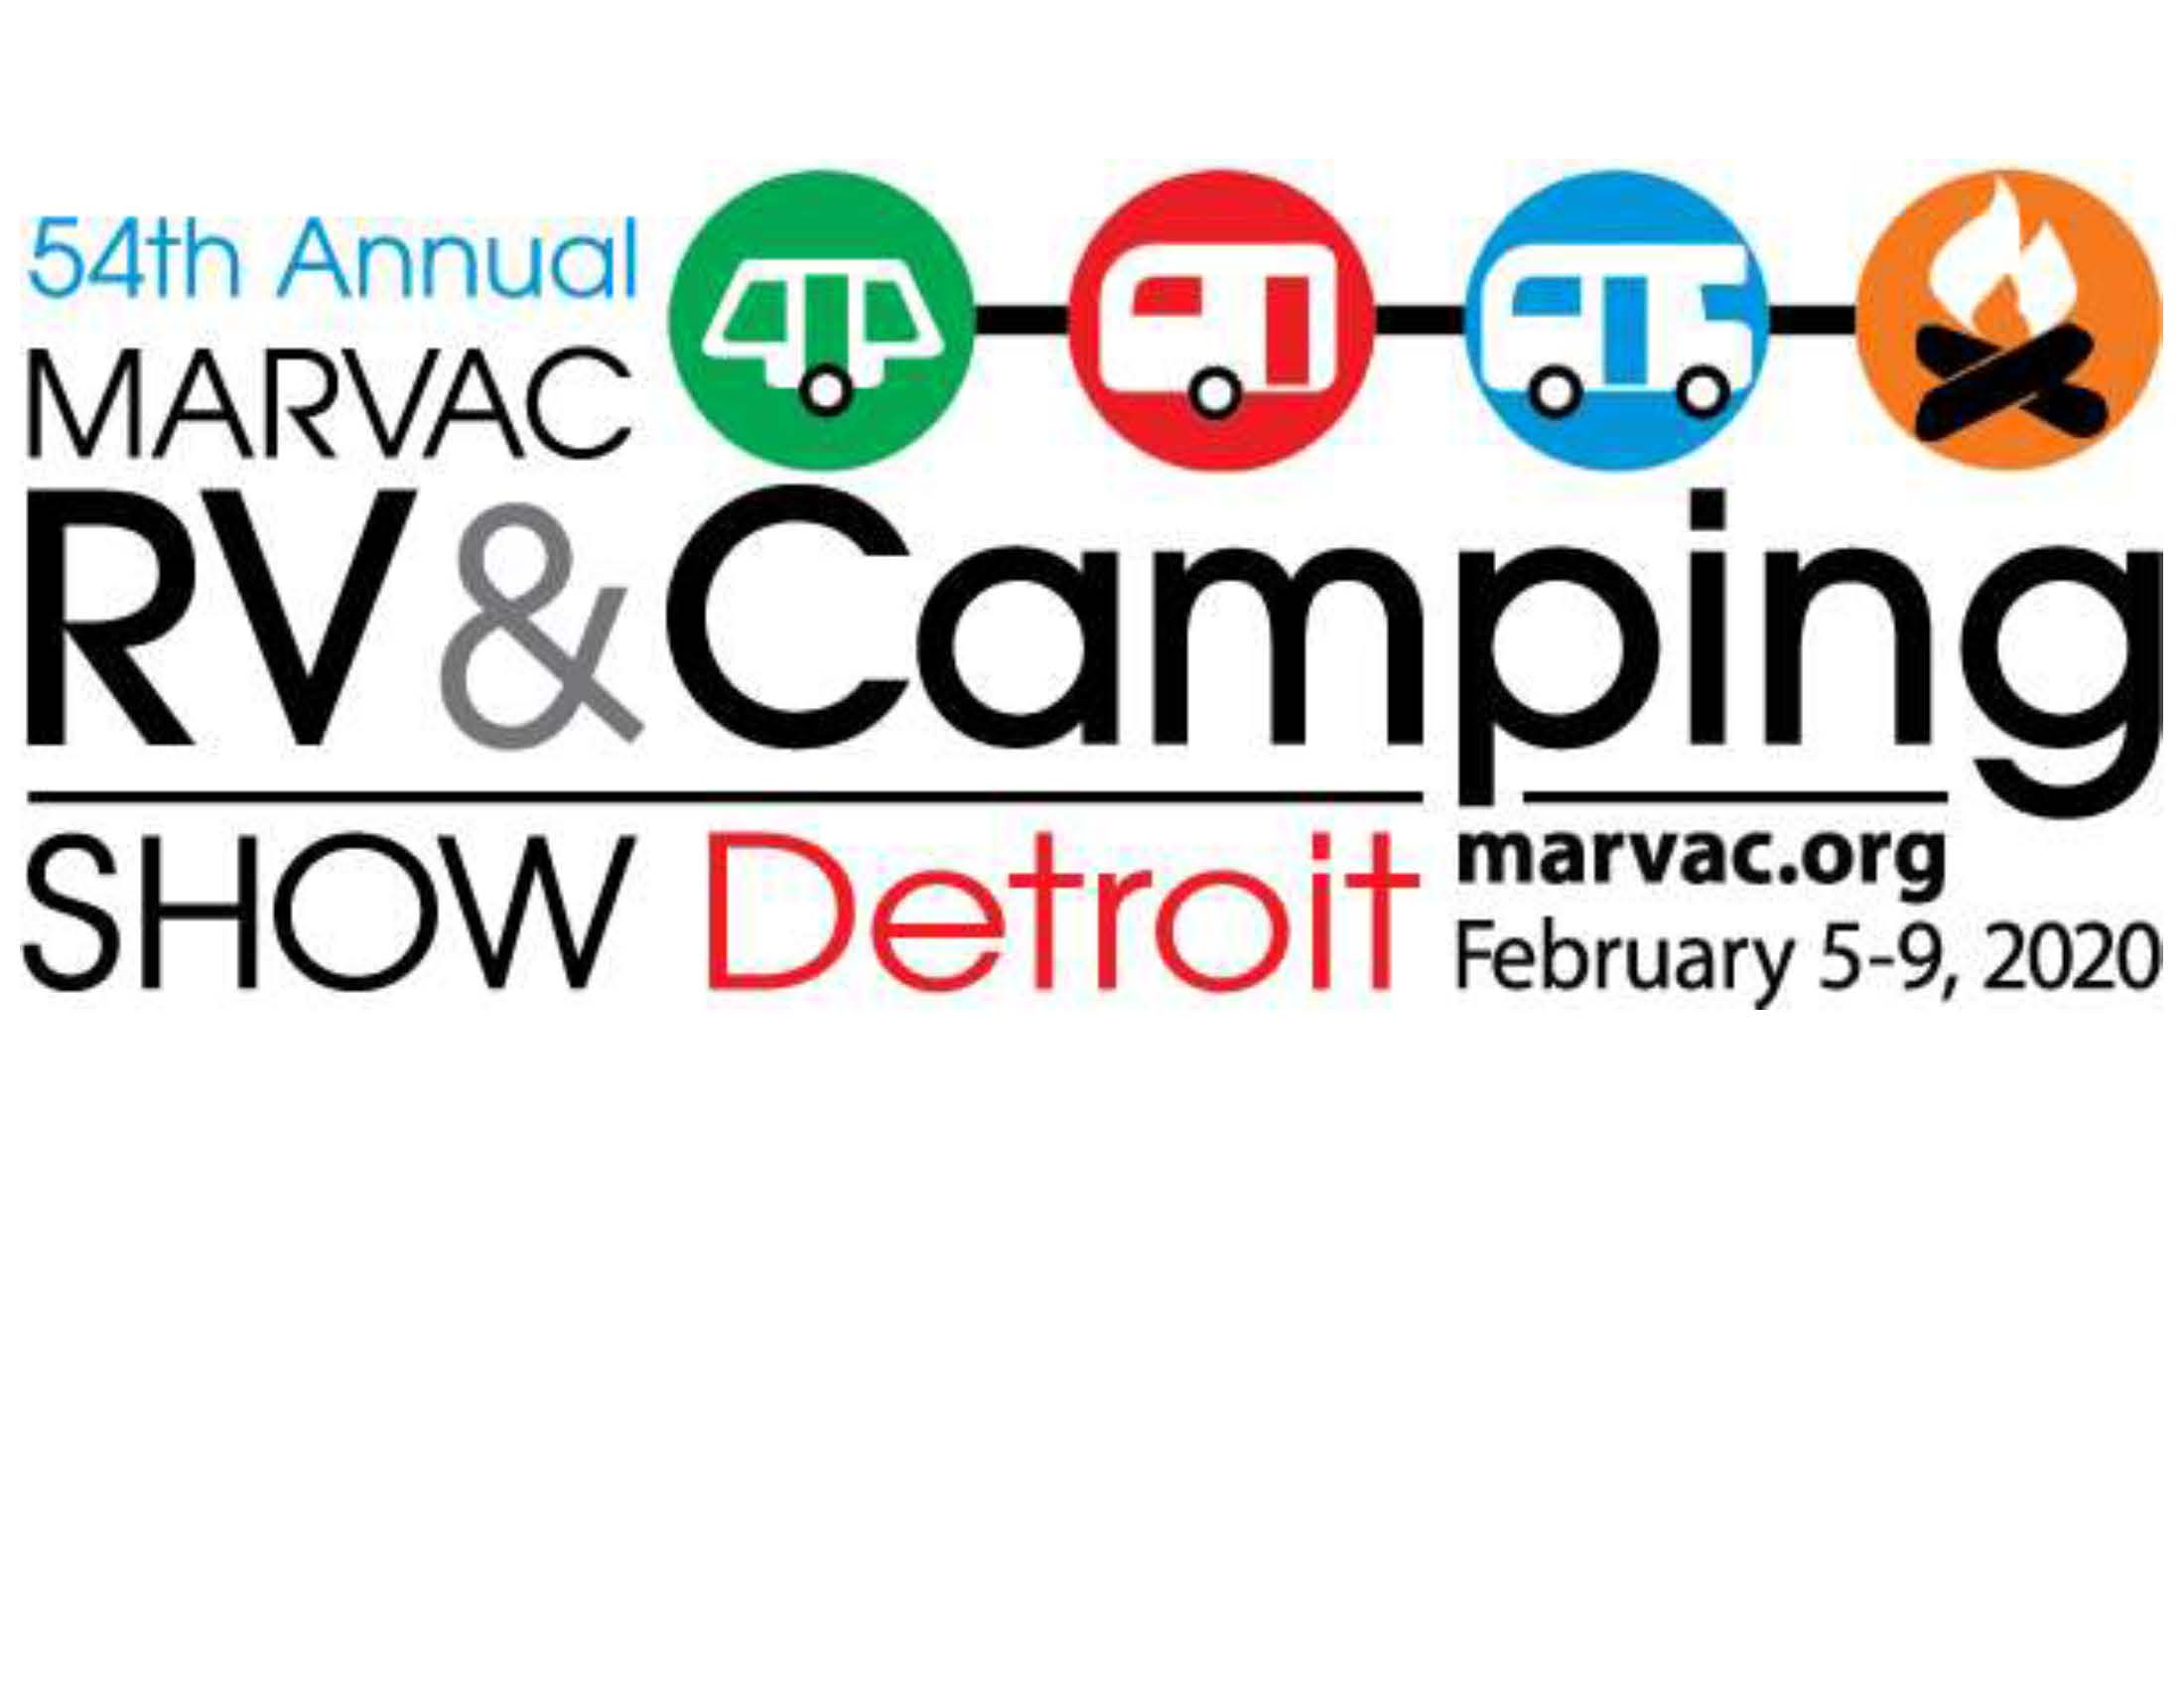 Spring Detroit RV & Camping Show